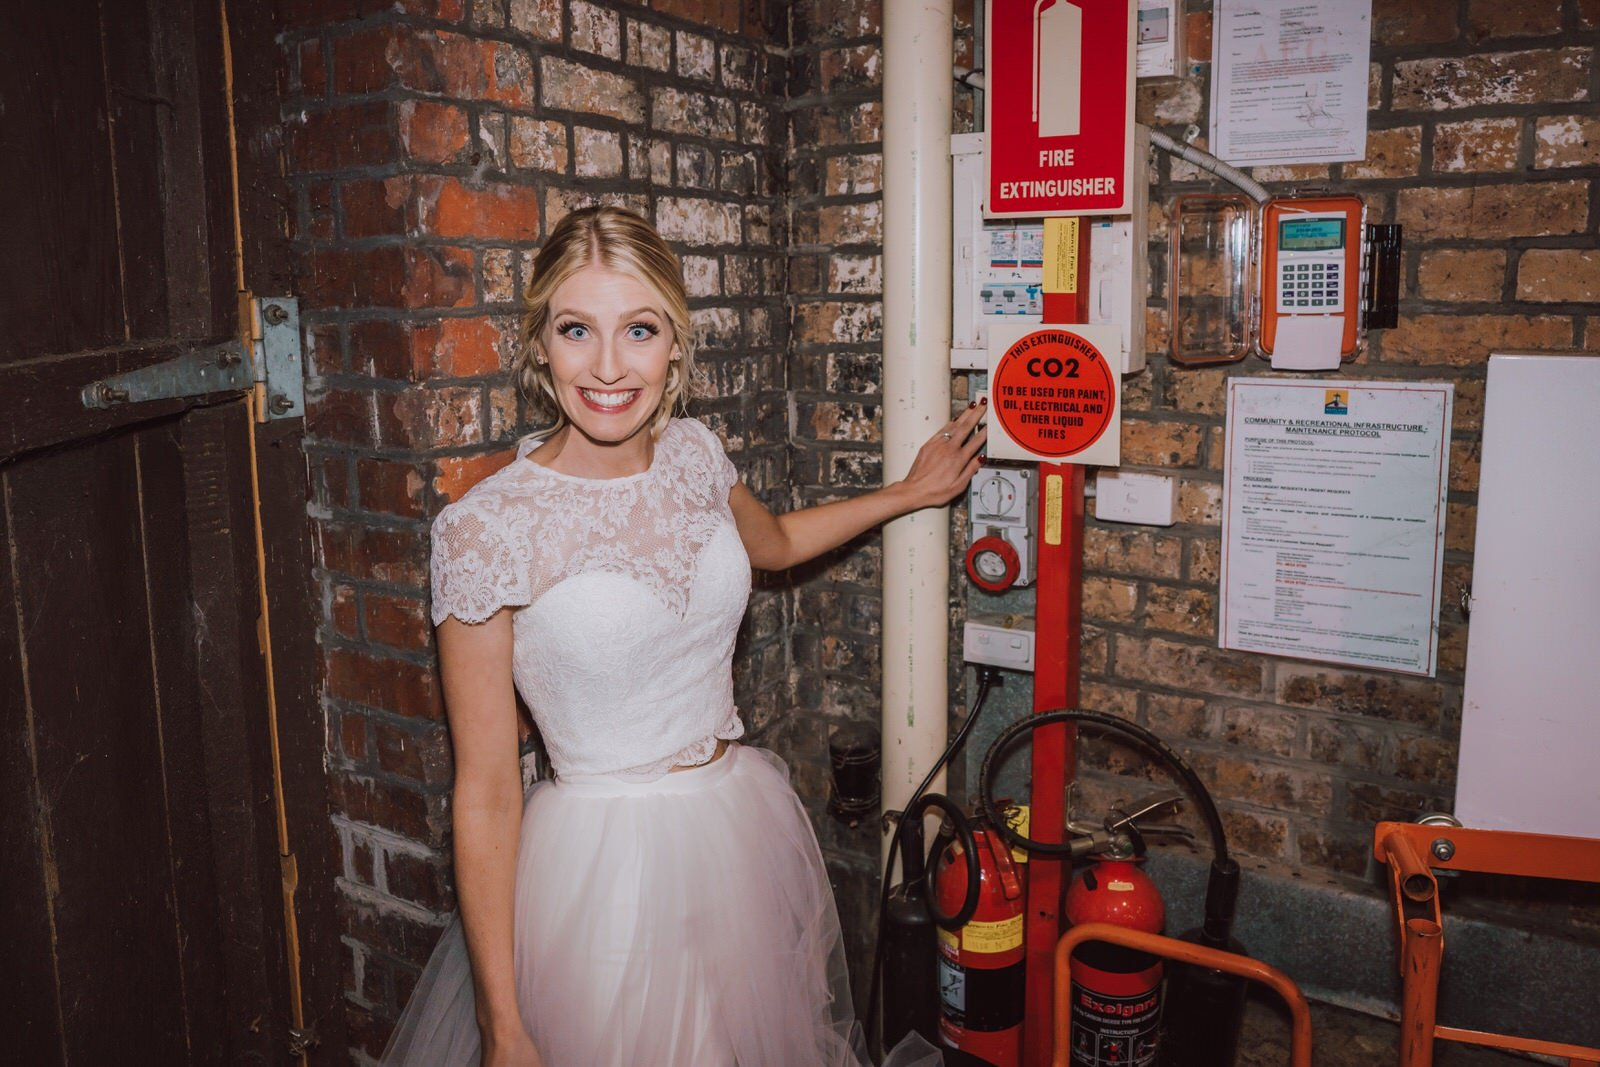 tayla-james-walka-water-works-oakhampton-654